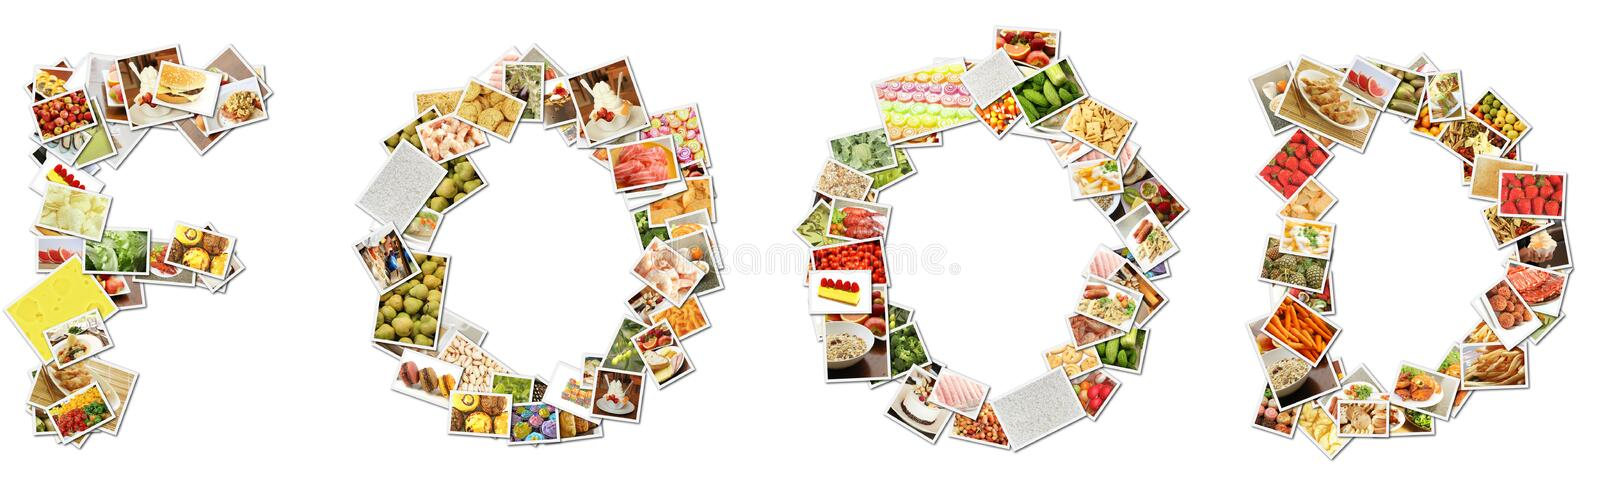 Food Menu Collage stock photo